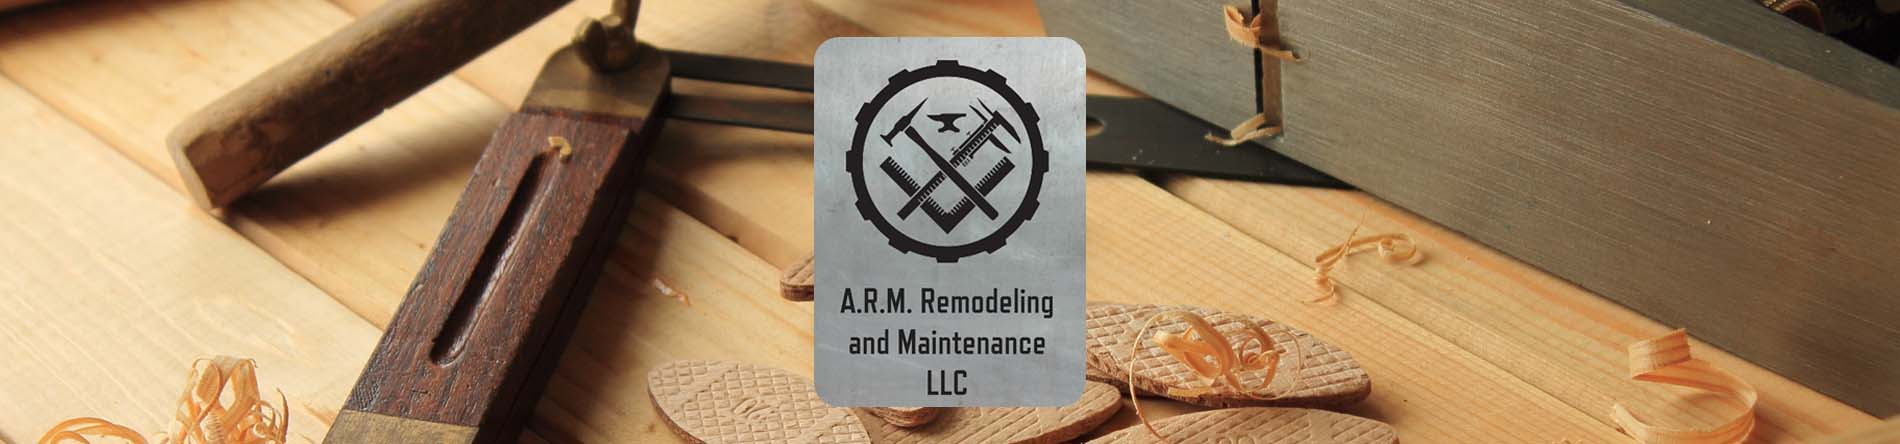 A.R.M. Remodeling And Maintenance, LLC is a Remodeling and Maintenance Company in Fort Walton Beach, FL